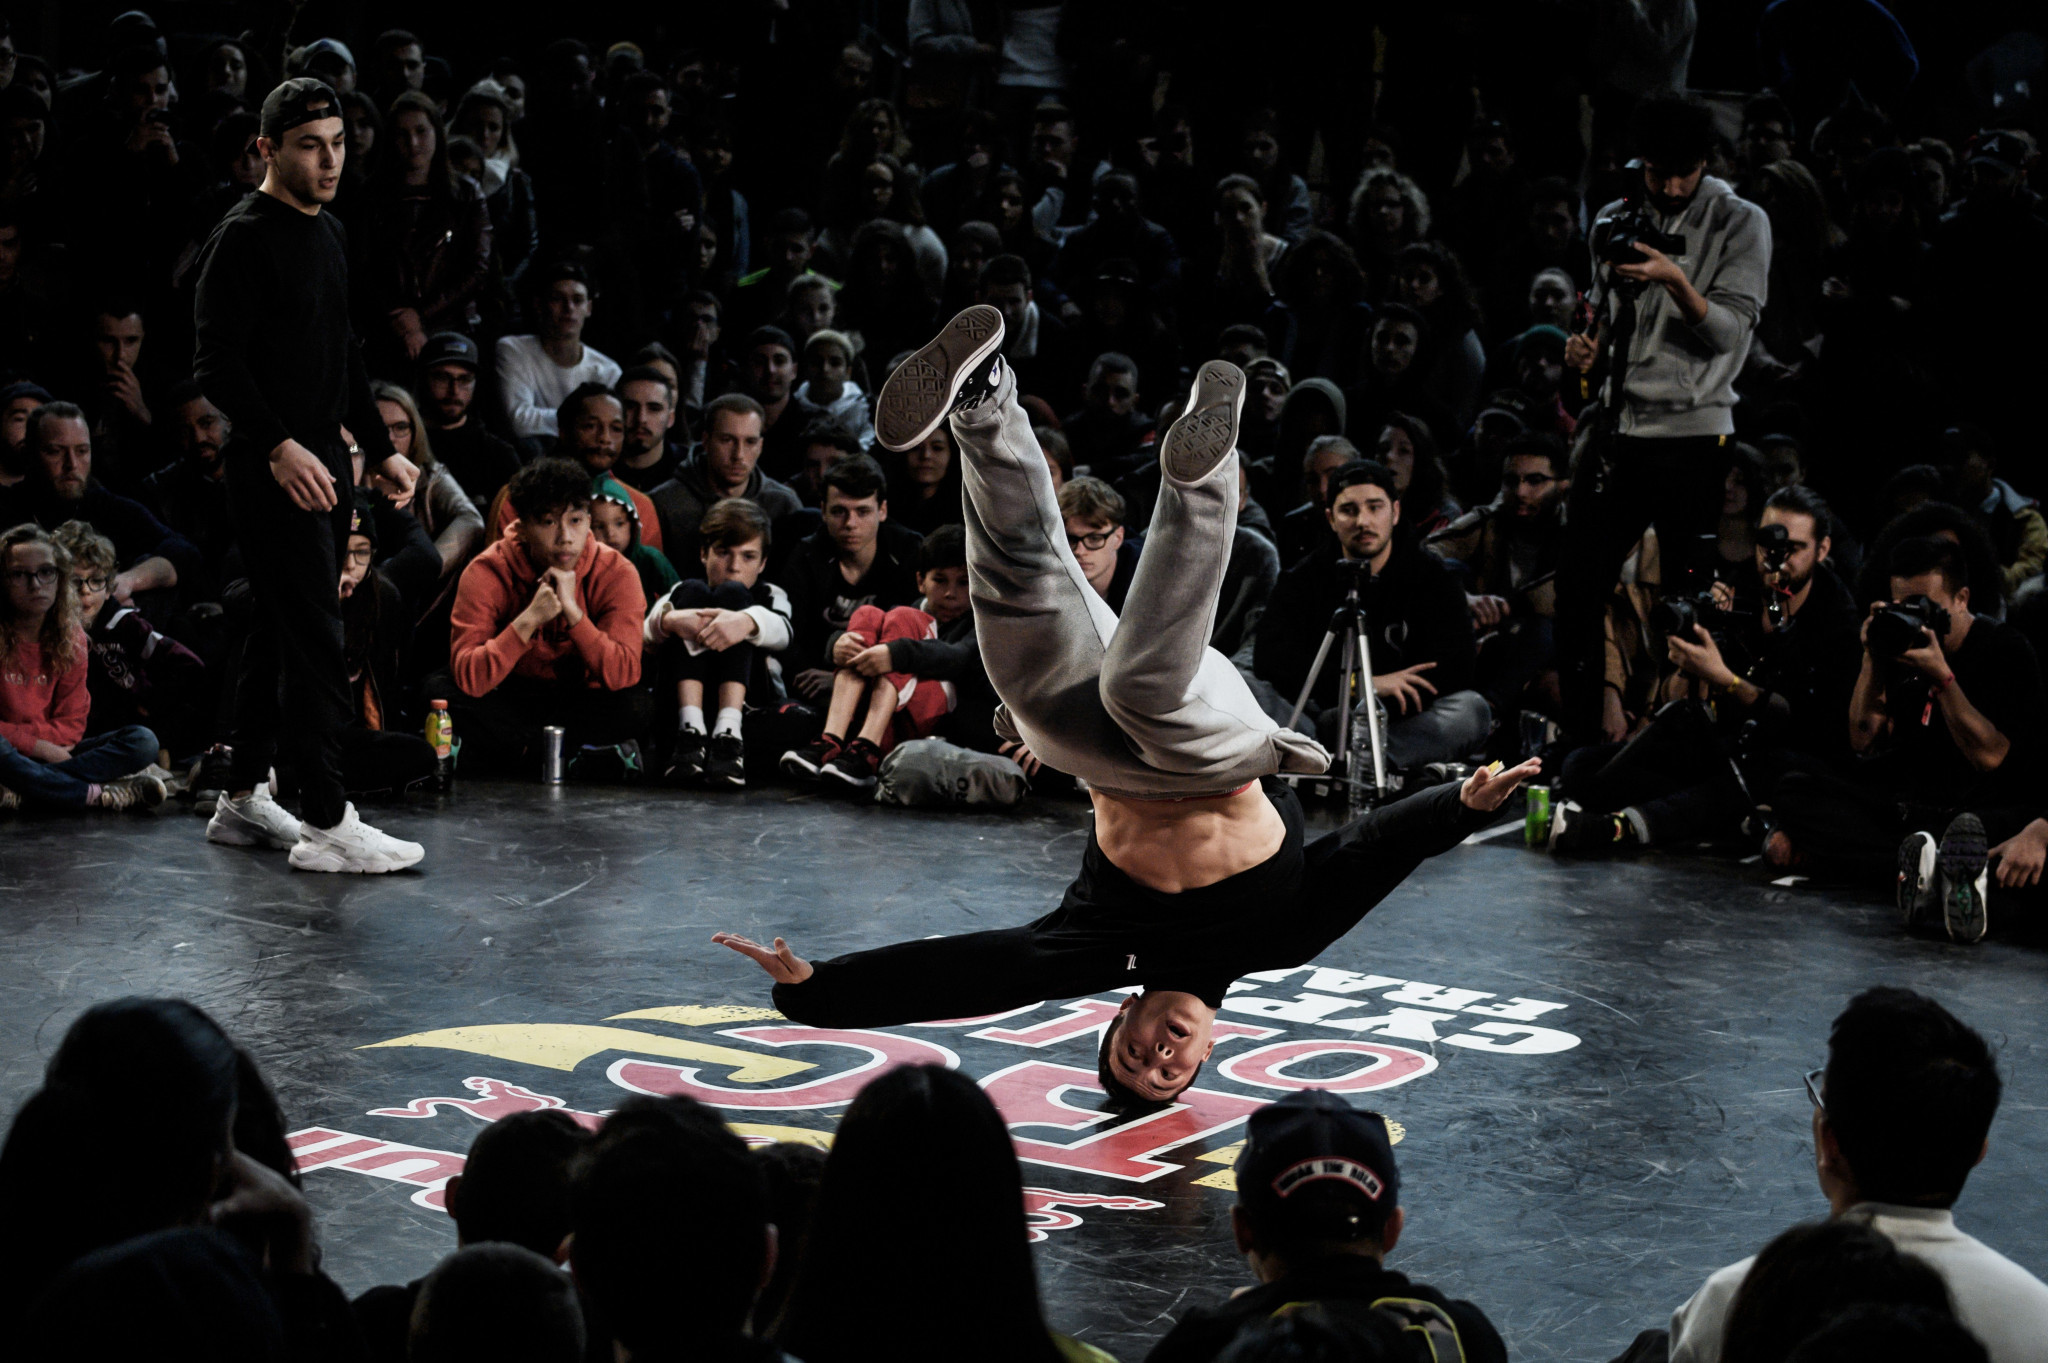 Breakdancing under the spotlight as crowds gather for FISE Montpellier